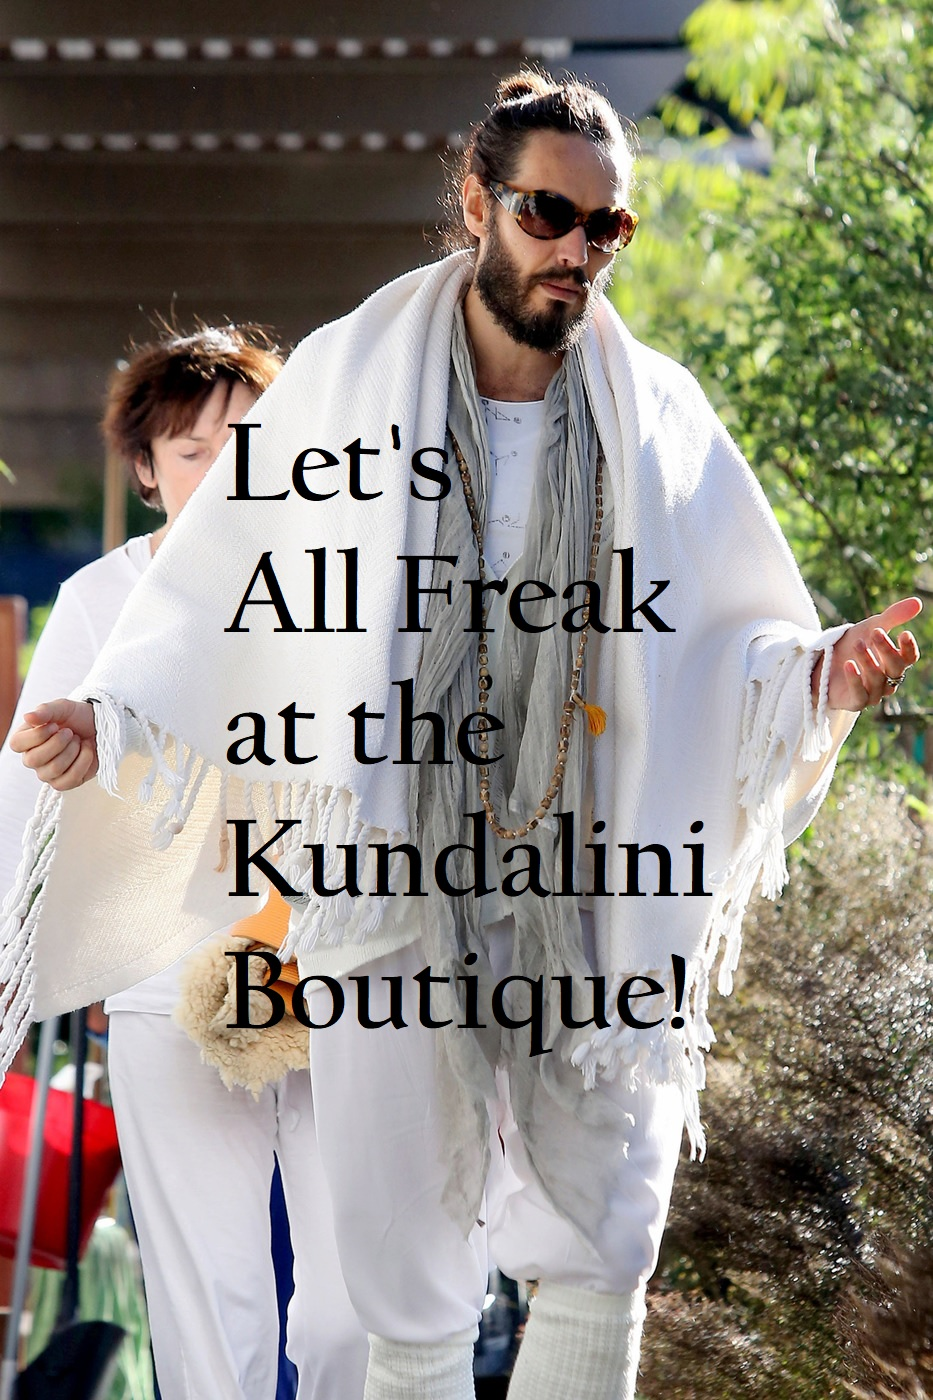 russell brand kundalini clothes